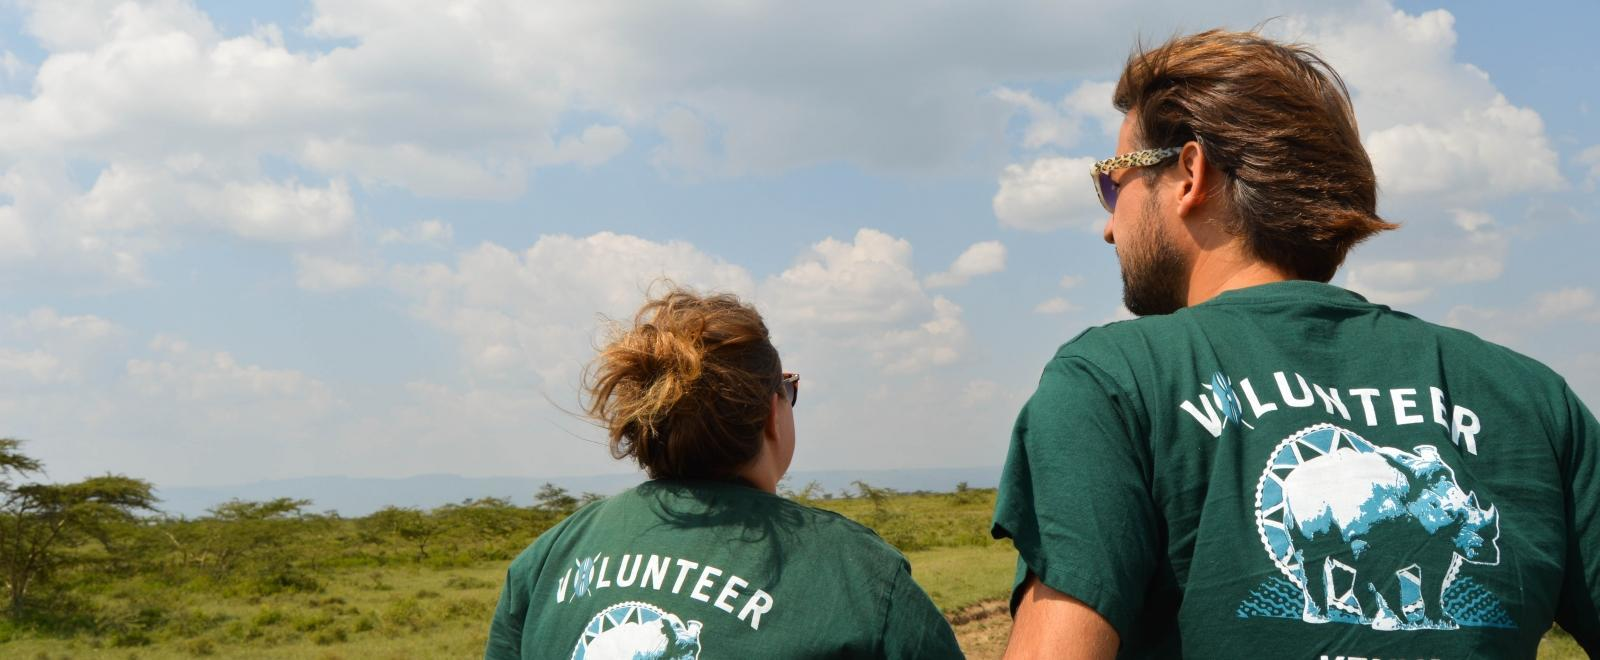 Teenagers conduct a wildlife census as part of their conservation volunteer work in Kenya